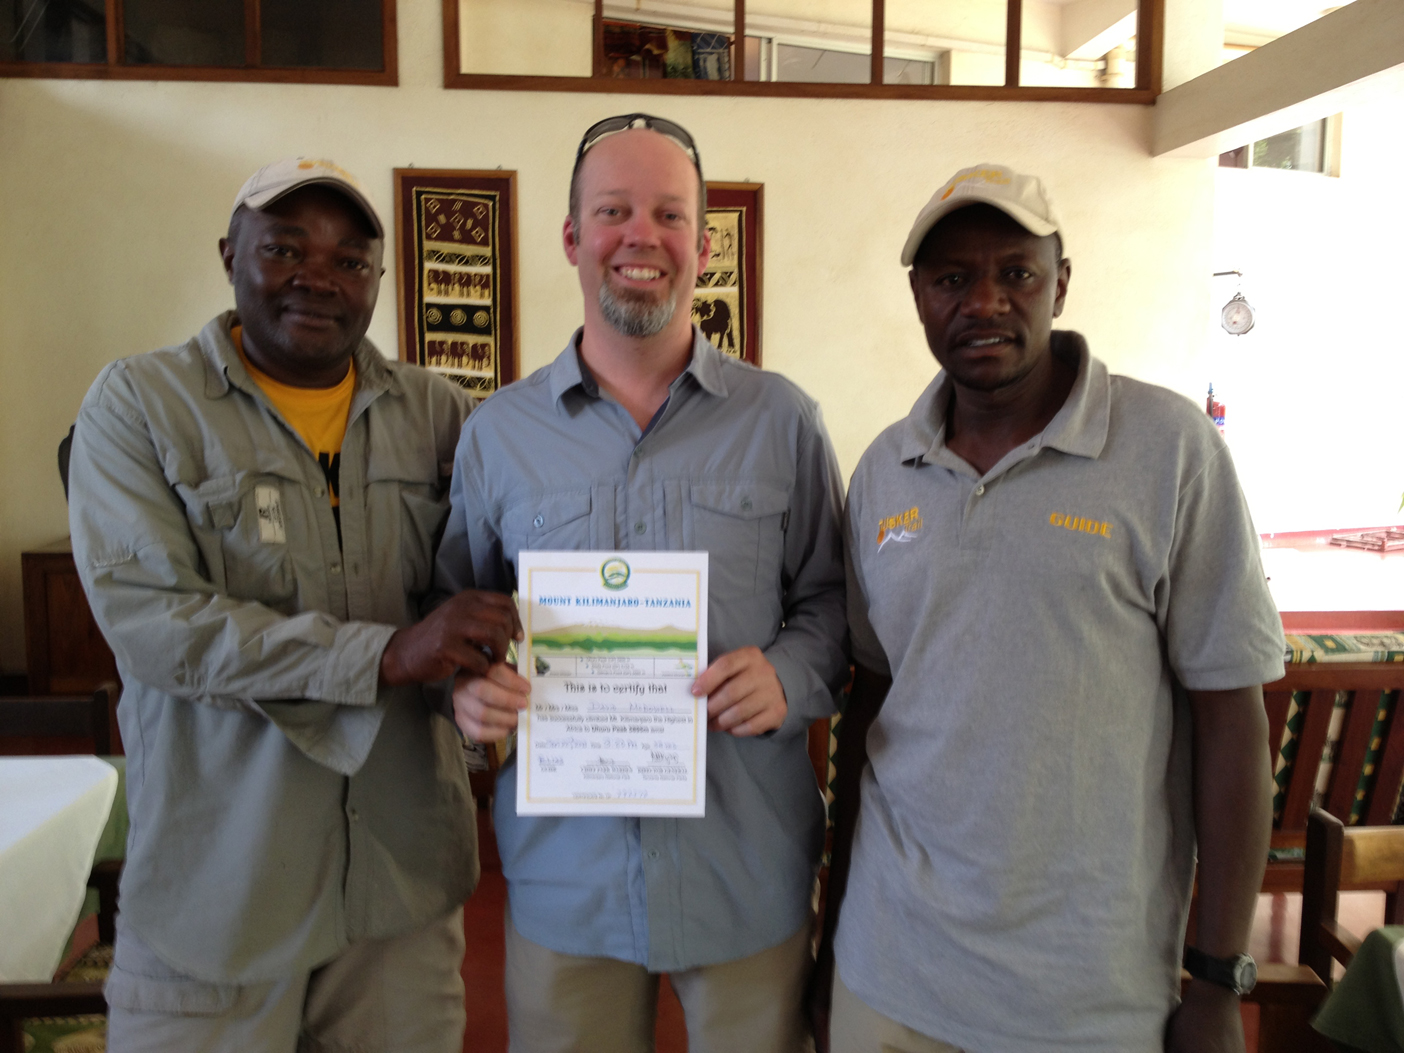 Receiving my official Mt. Kilimanjaro summit certificate. (L to R) Elias (lead guide) , David McDowell, Gaudence (guide)